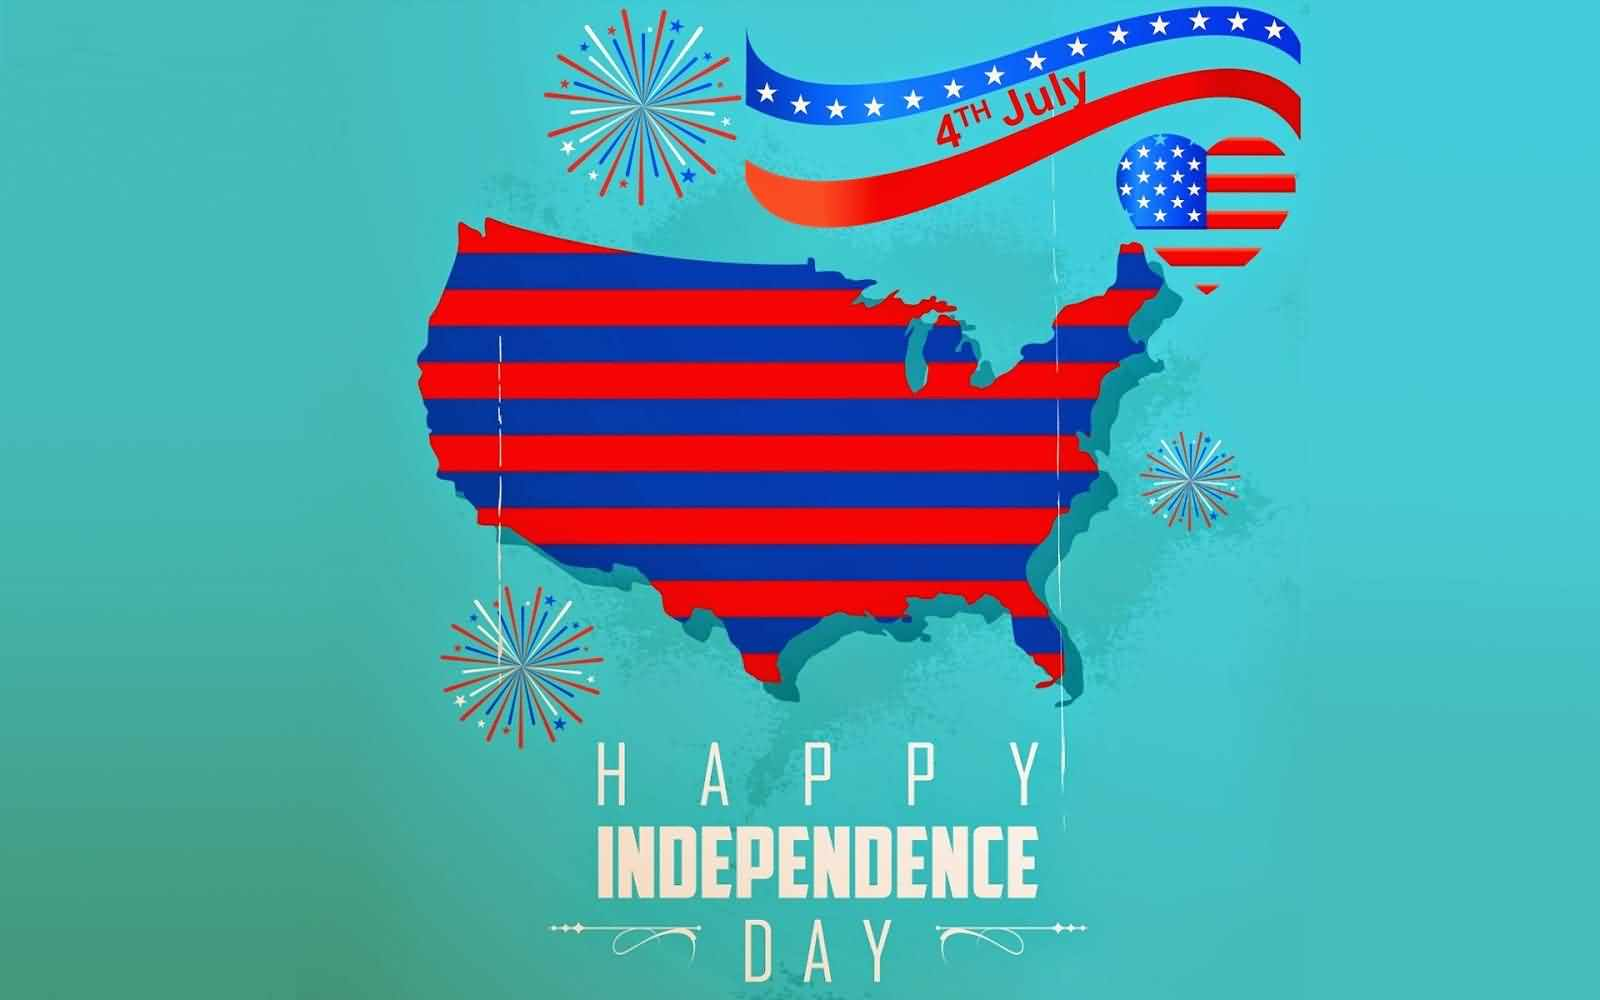 Beautiful 4th July Happy Independence Day Greetings Card Image